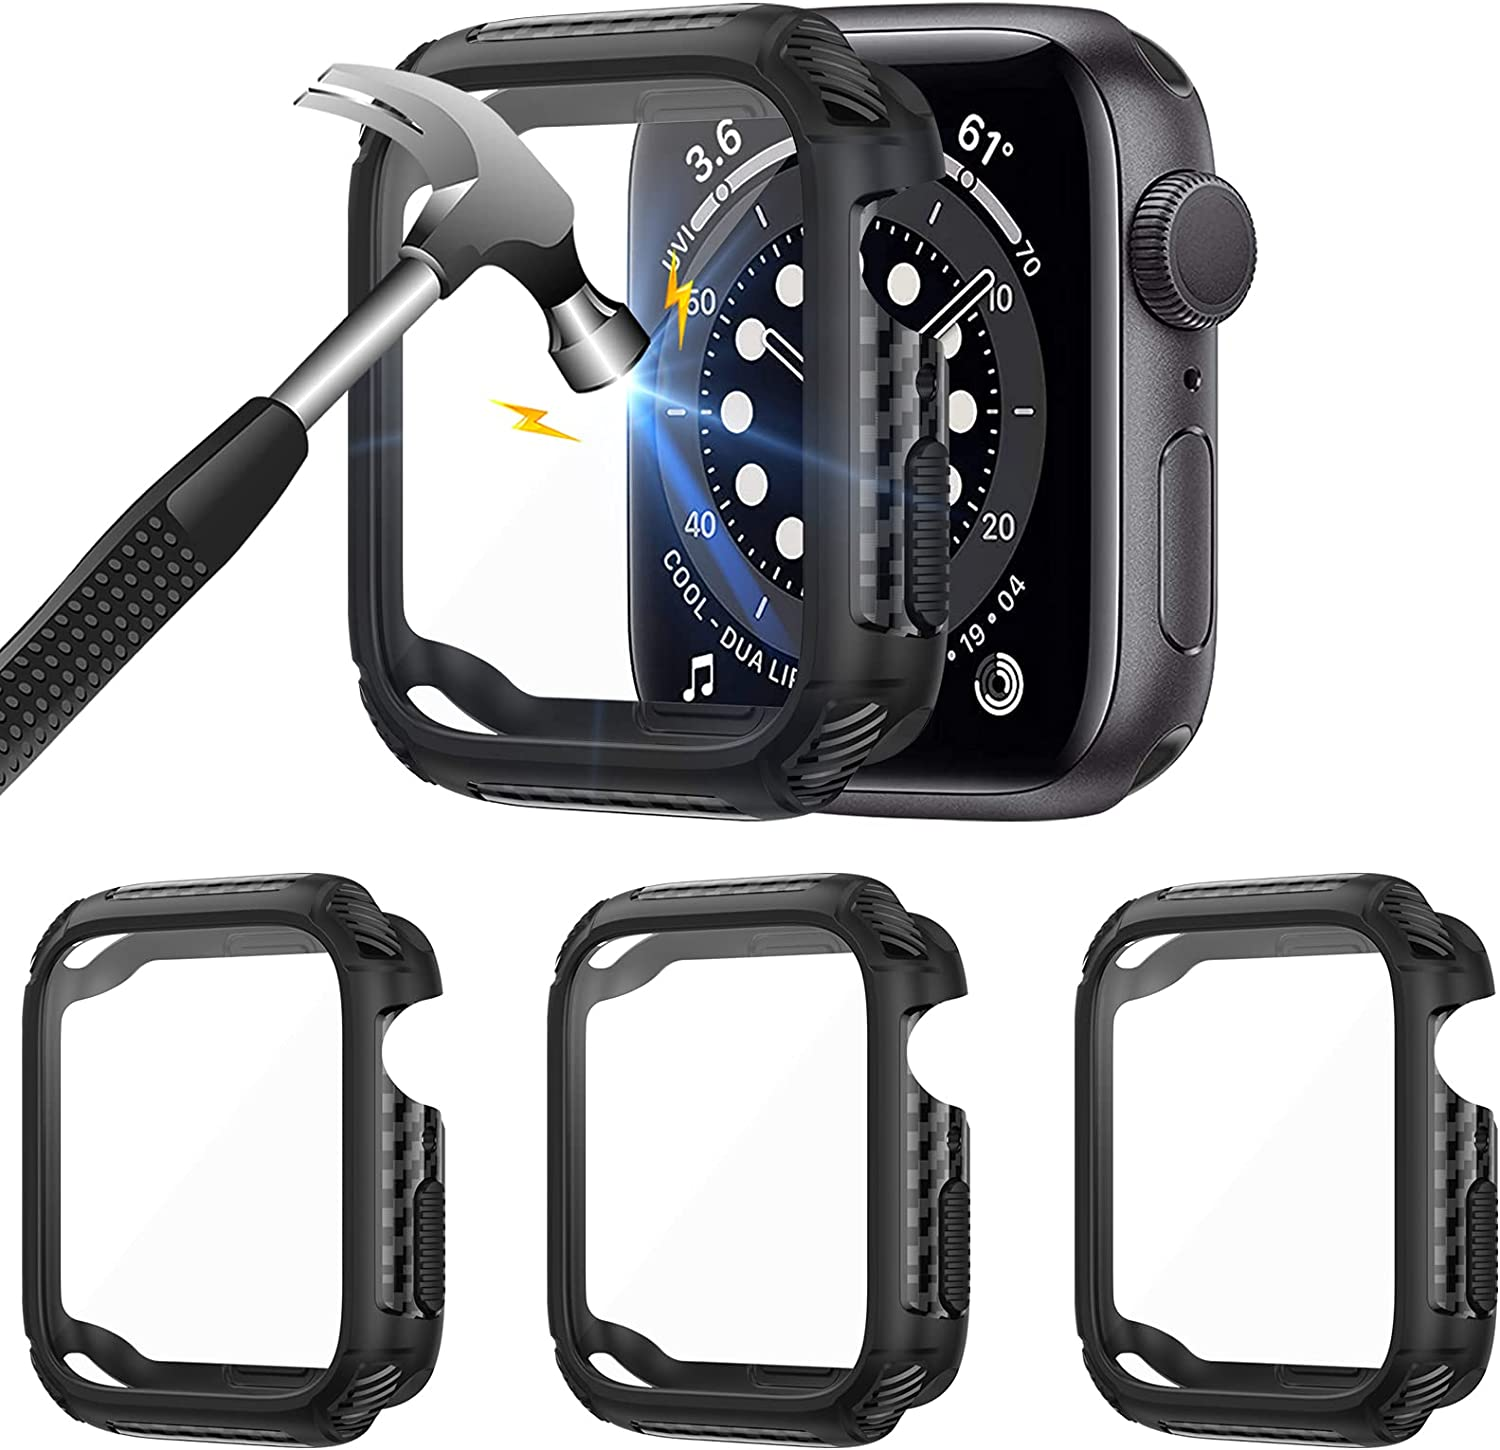 Liwin 3-Pack Case Compatible with Apple Watch SE/Series 6 / Series 5 / Series 4 40mm with Tempered Glass Screen Protector, Full Protective Cover TPU Bumper Accessories Compatible with iWatch 40mm